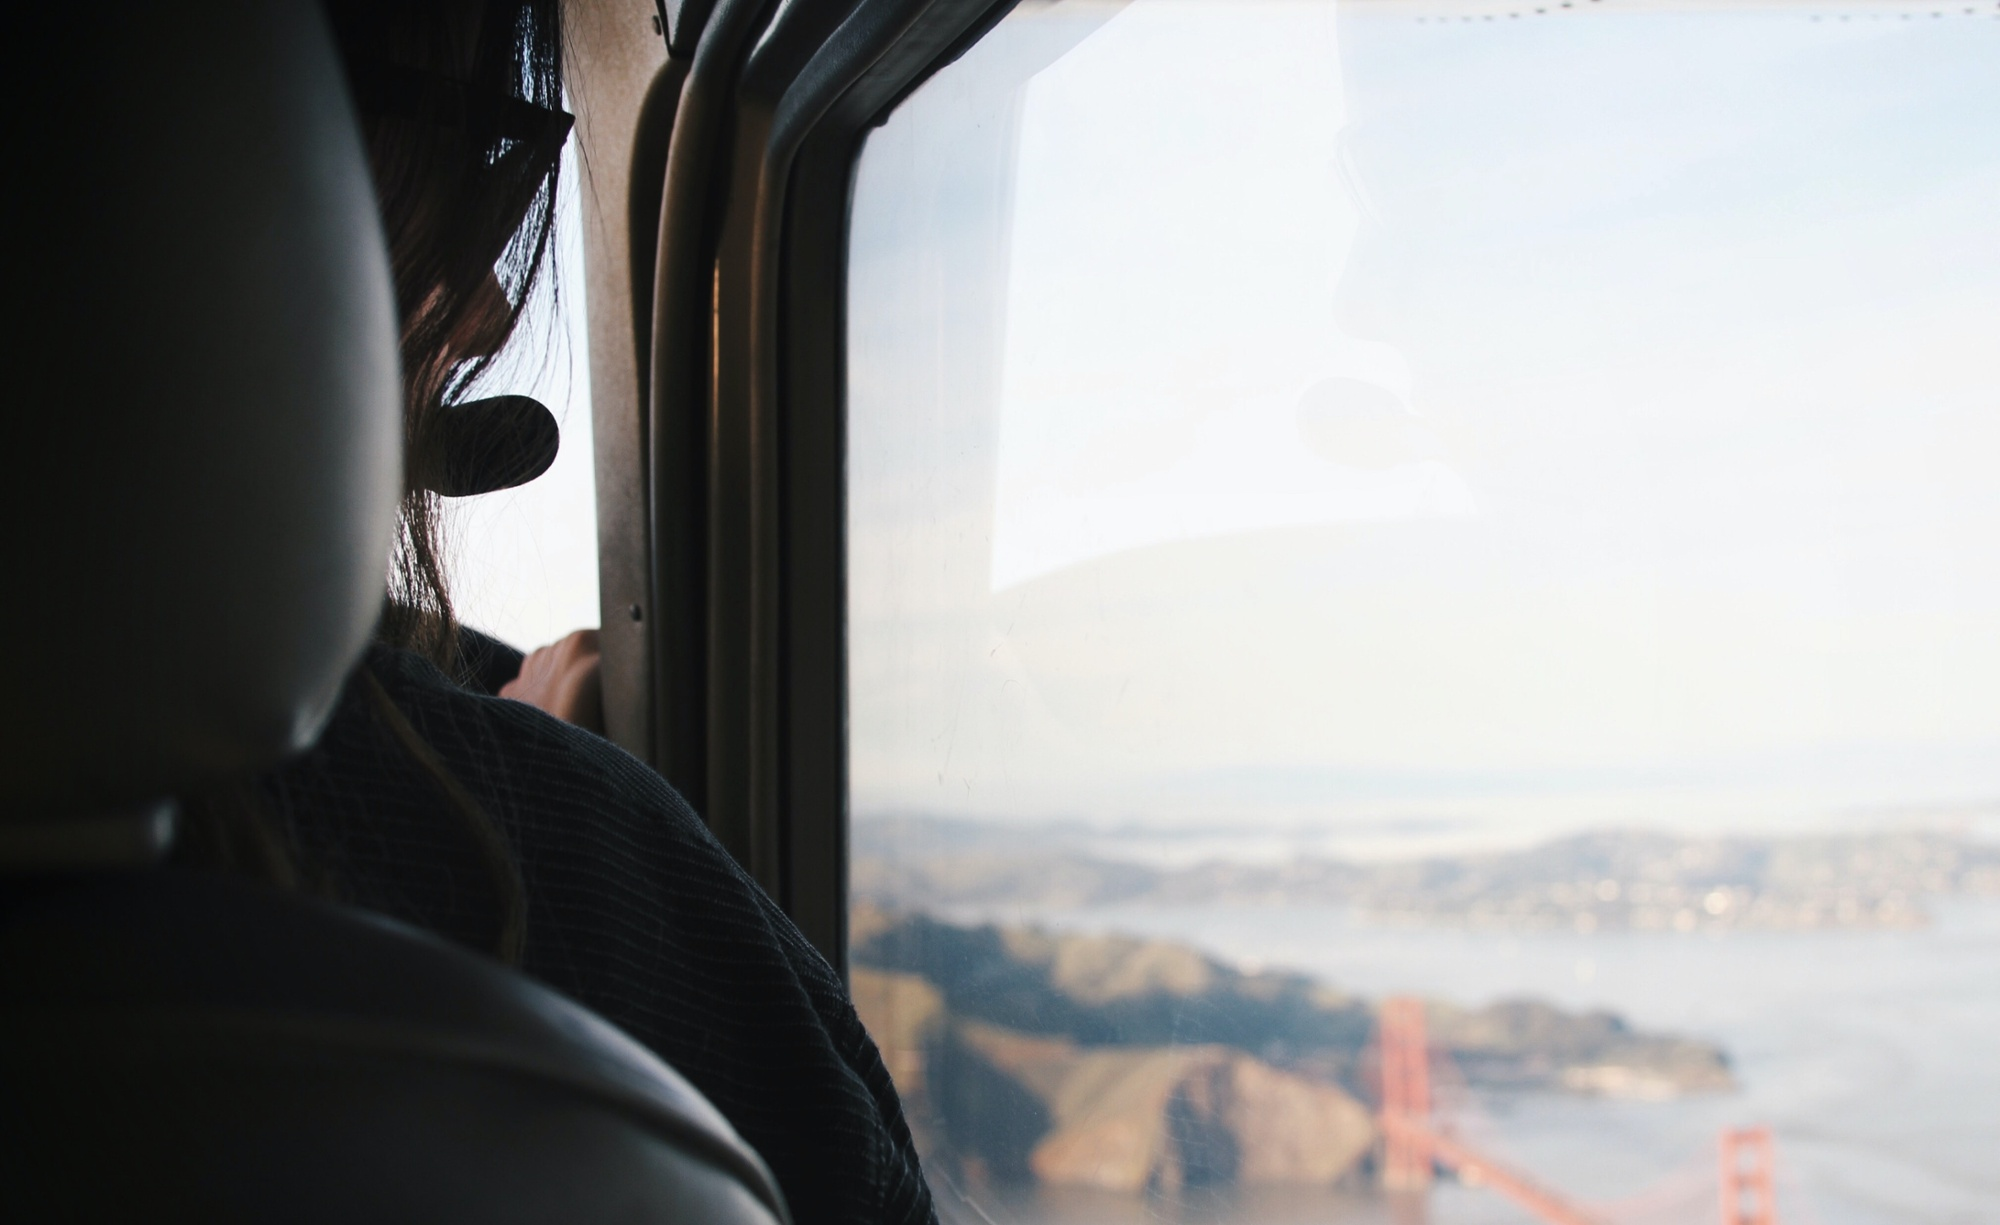 Interested in Learning to Fly? Take a Discovery Flight!